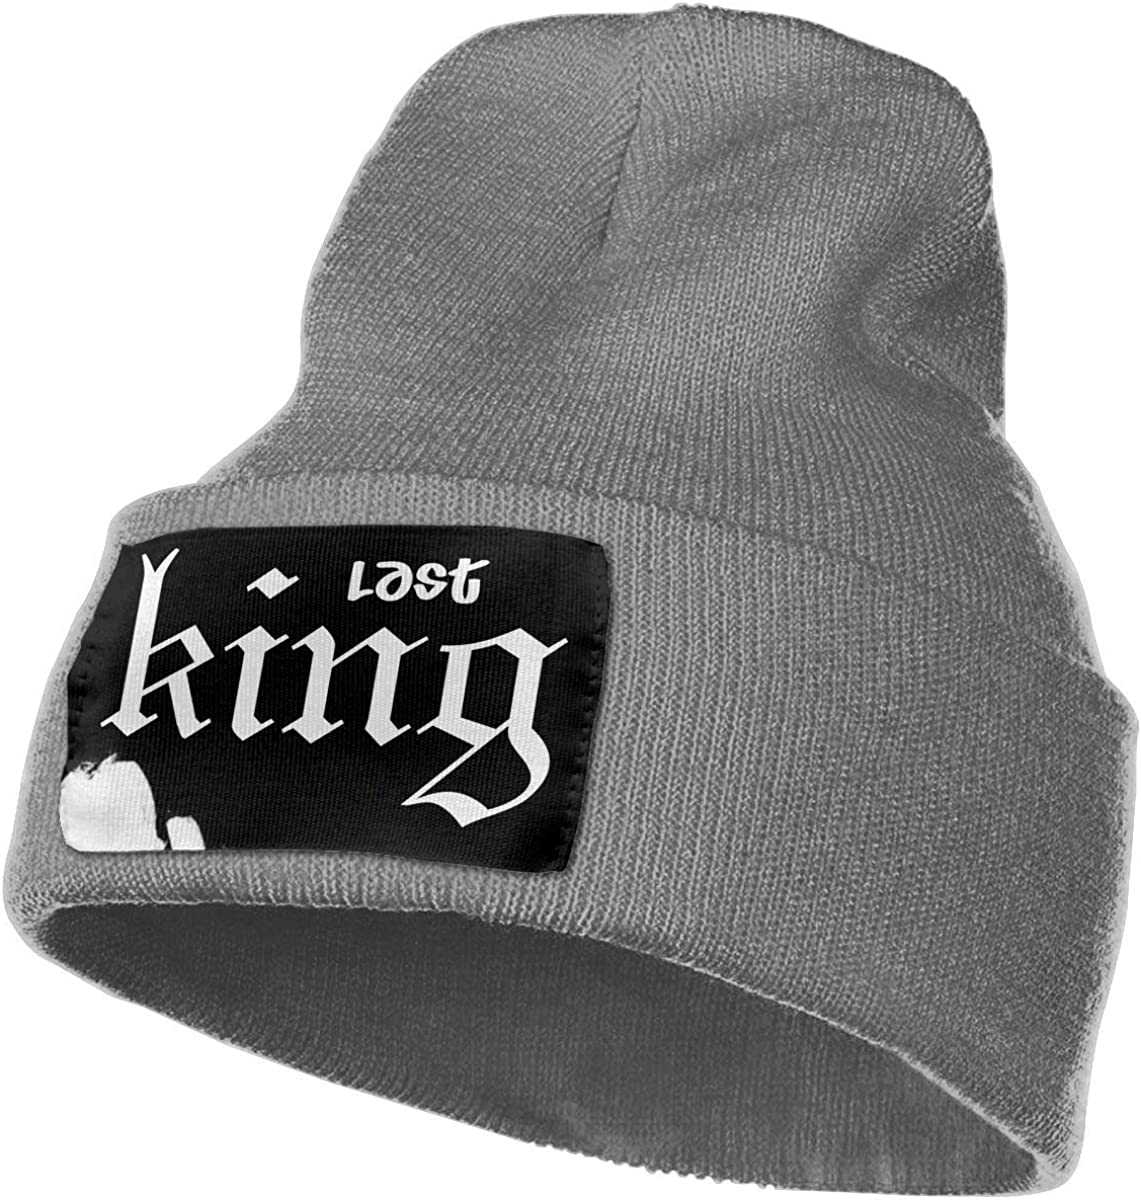 Unisex Last King Beanie Hat Winter Warm Knit Skull Hat Gorra ...